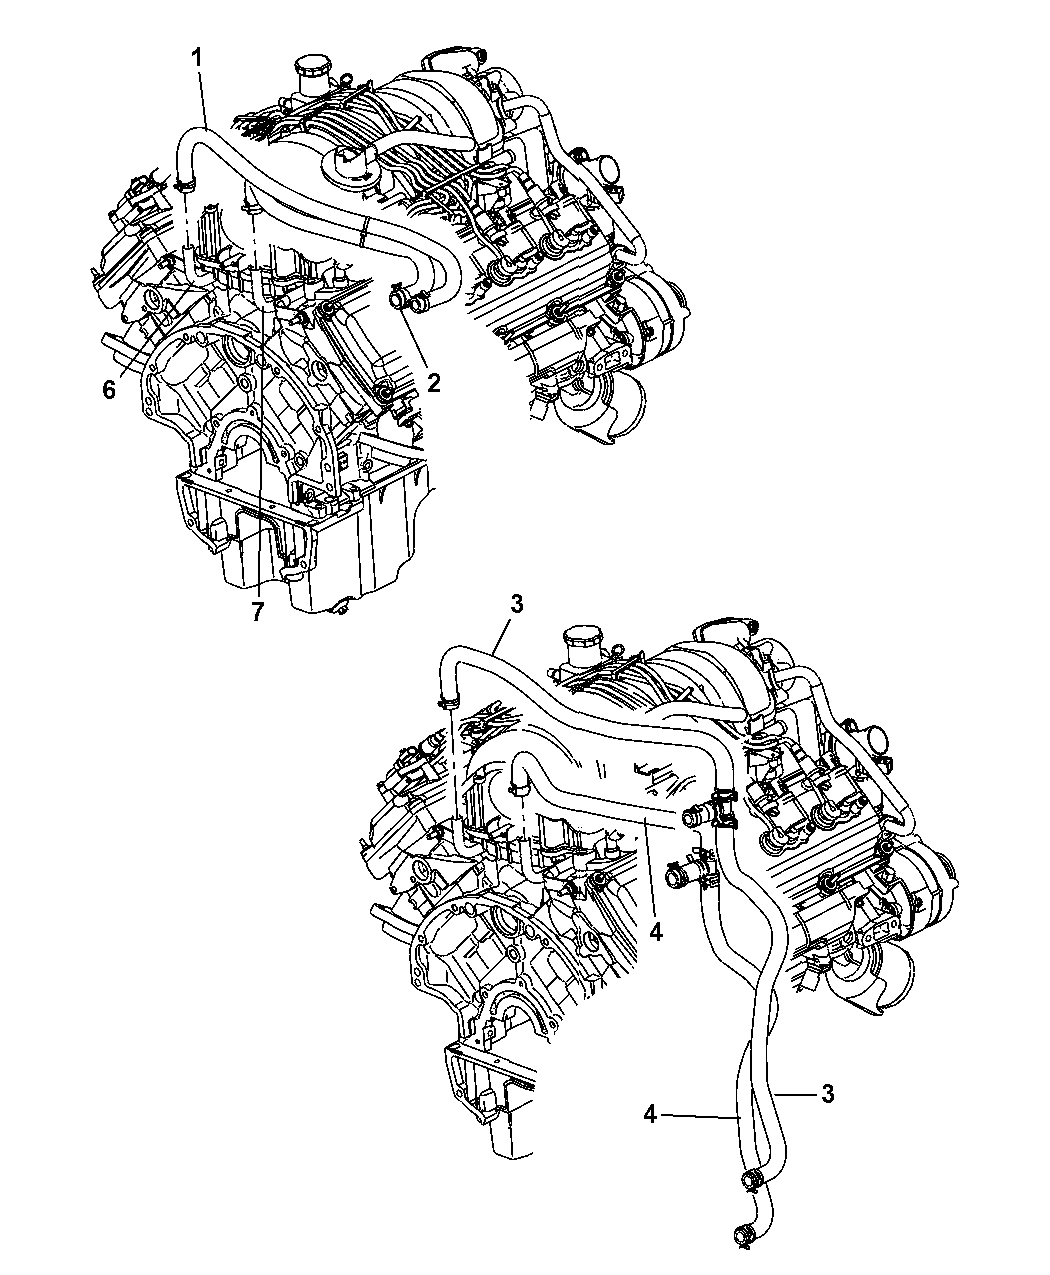 WRG-6981] Jeep Commander Engine Diagram on